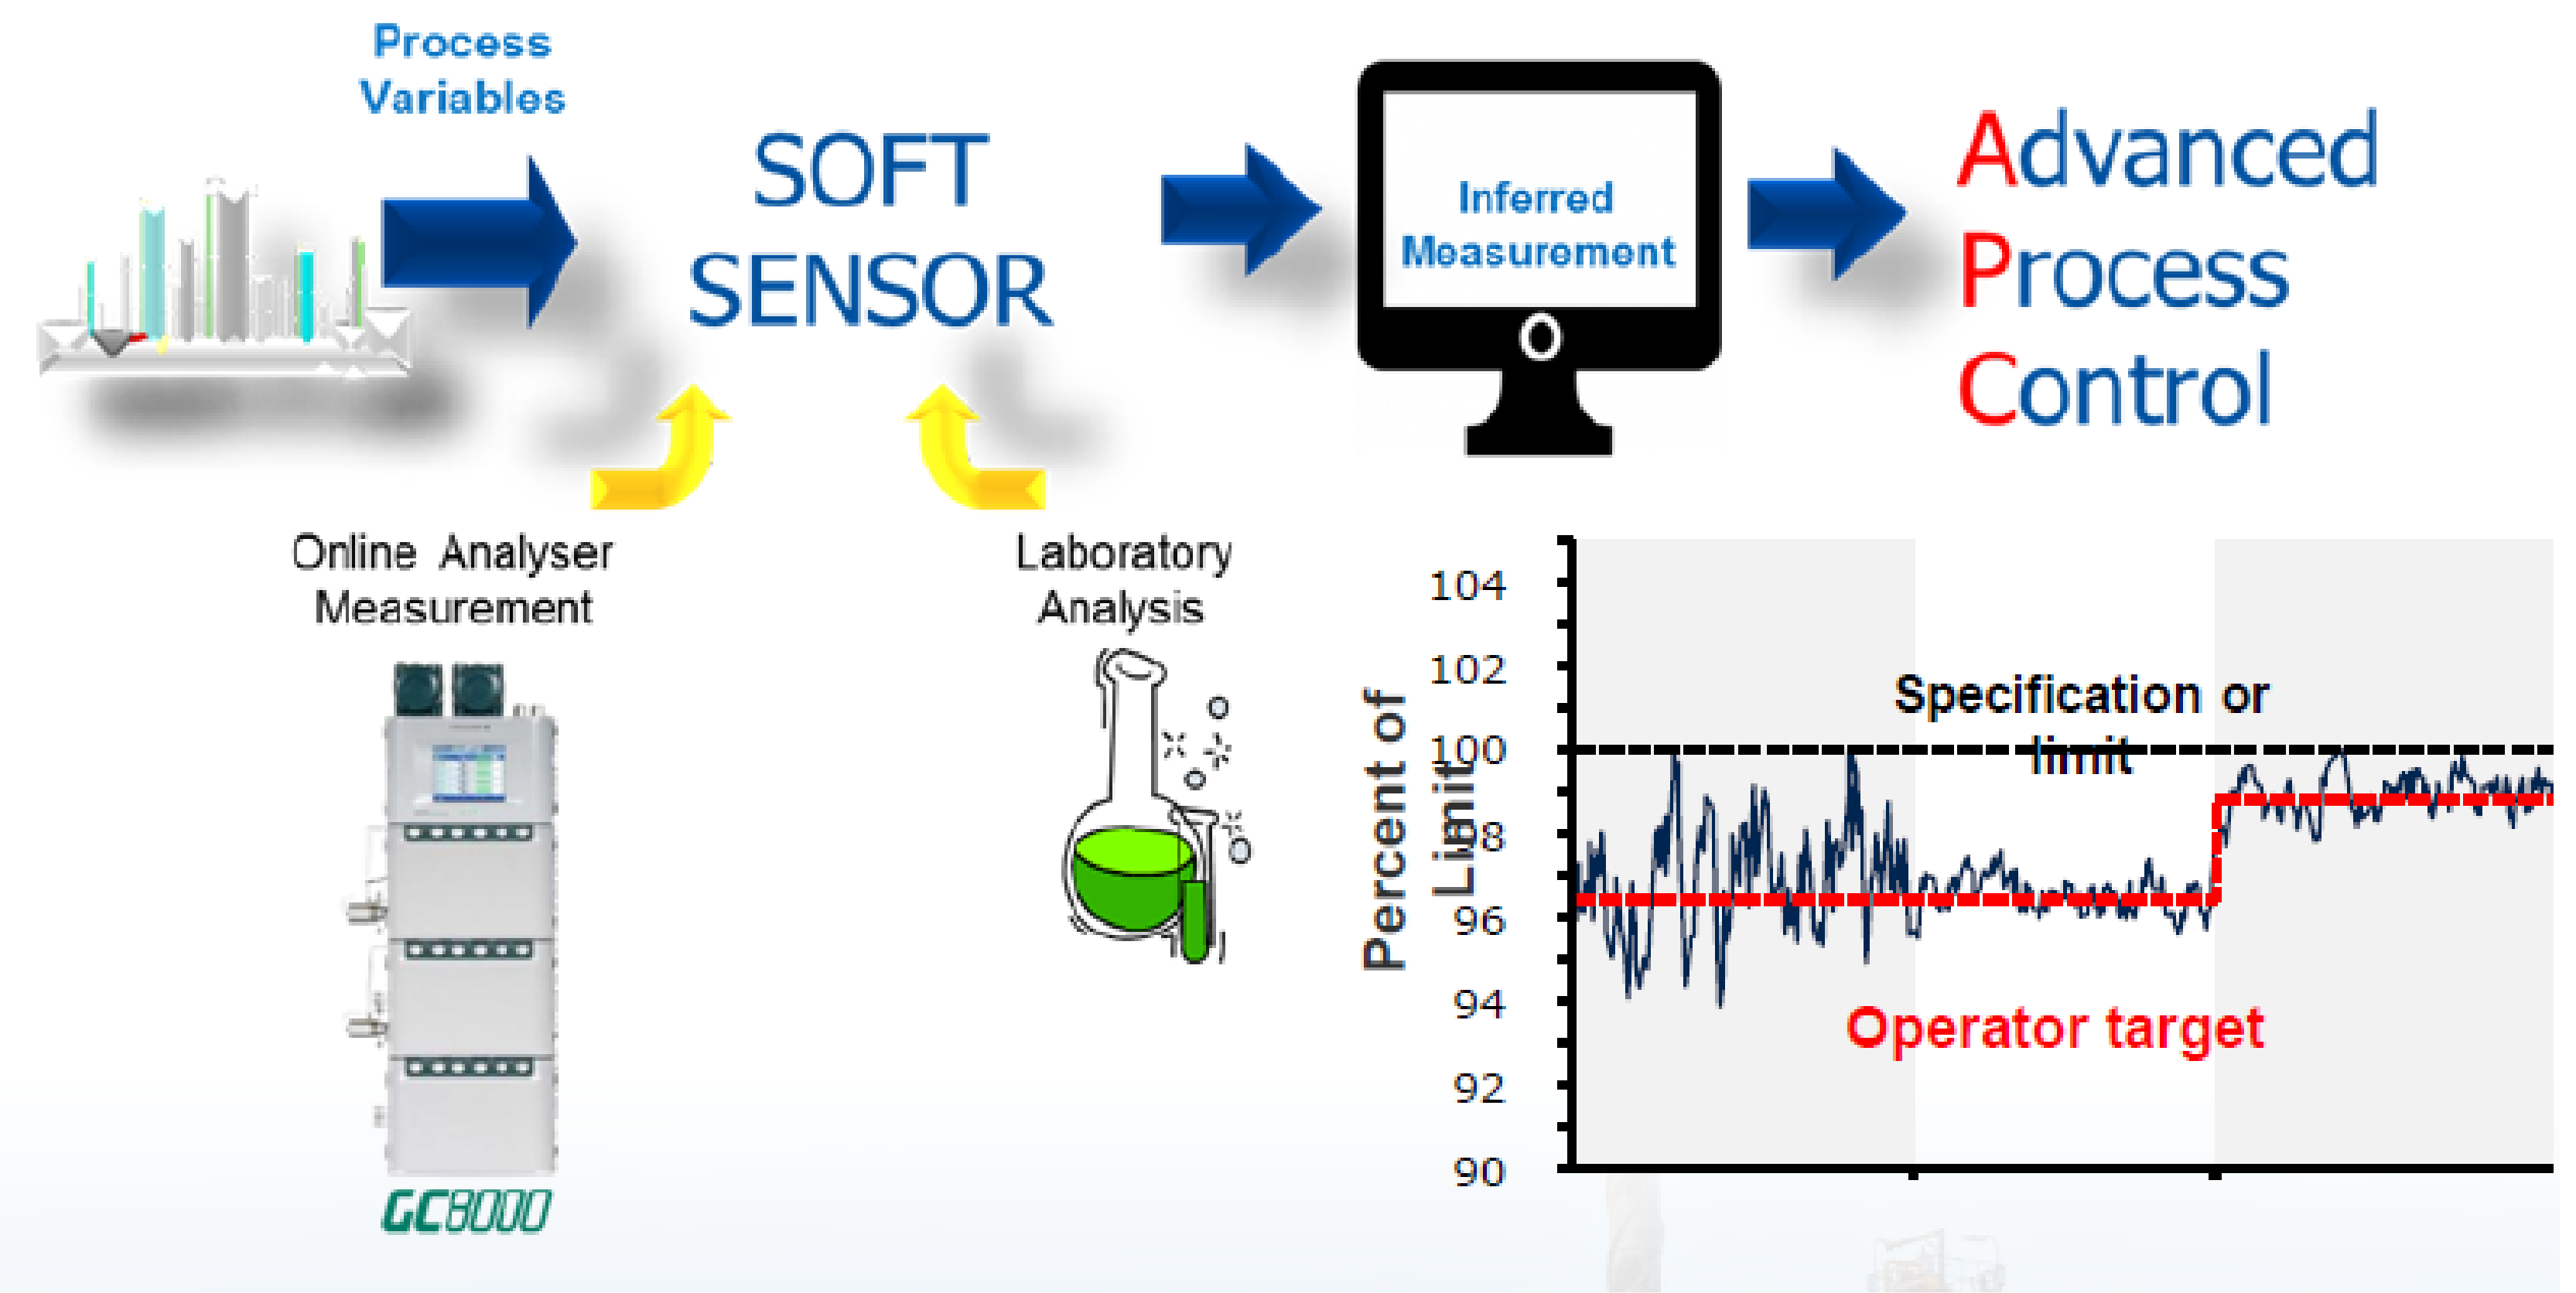 Use of soft sensor to improve butadine process control